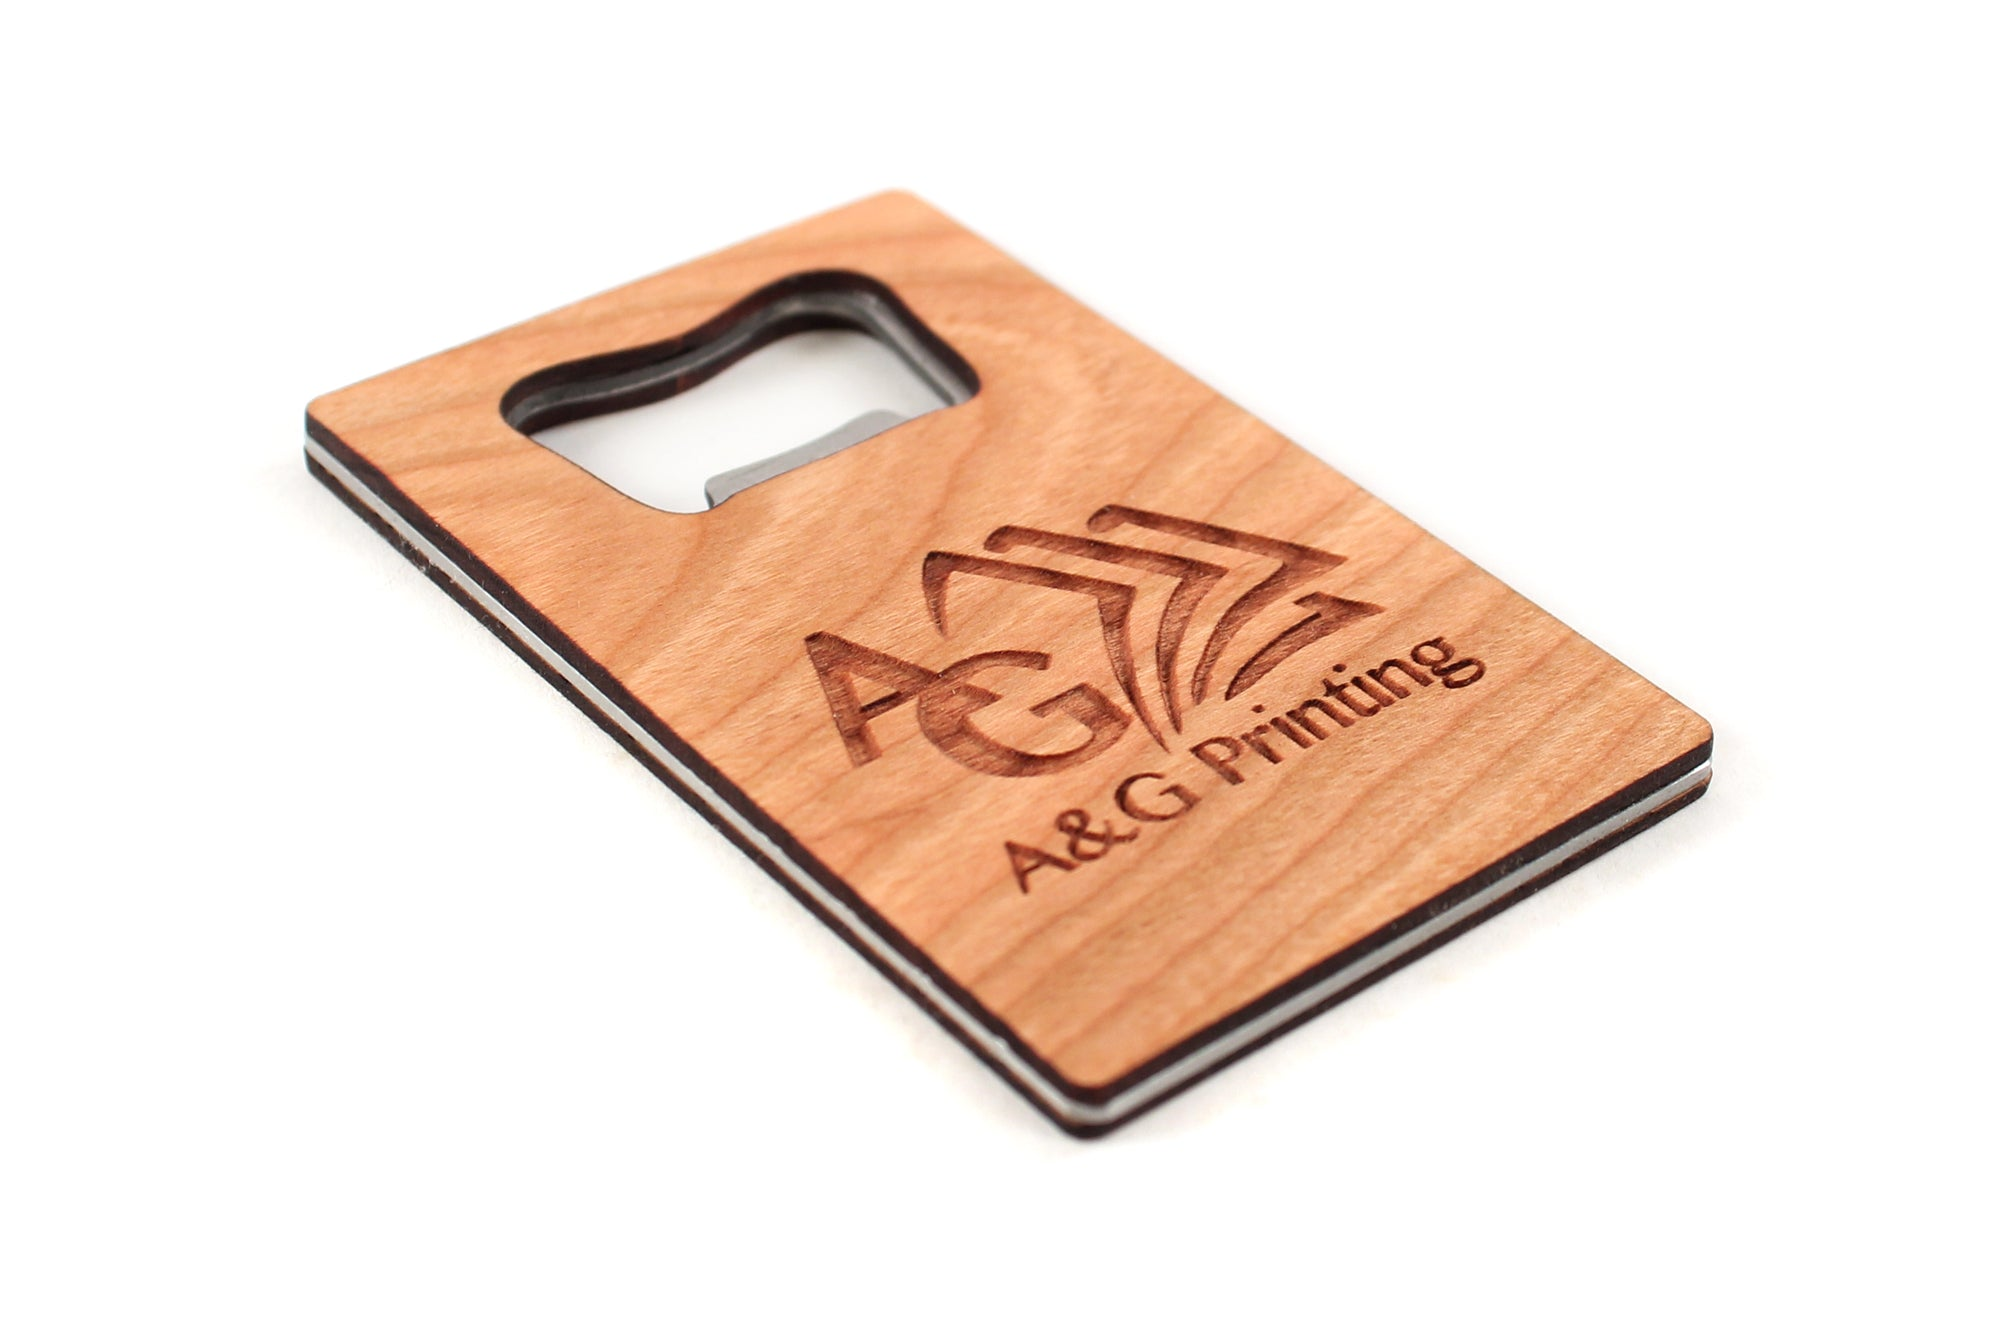 eco-friendly sustainable wooden bottle opener with logo Smiling Tree Gifts USA